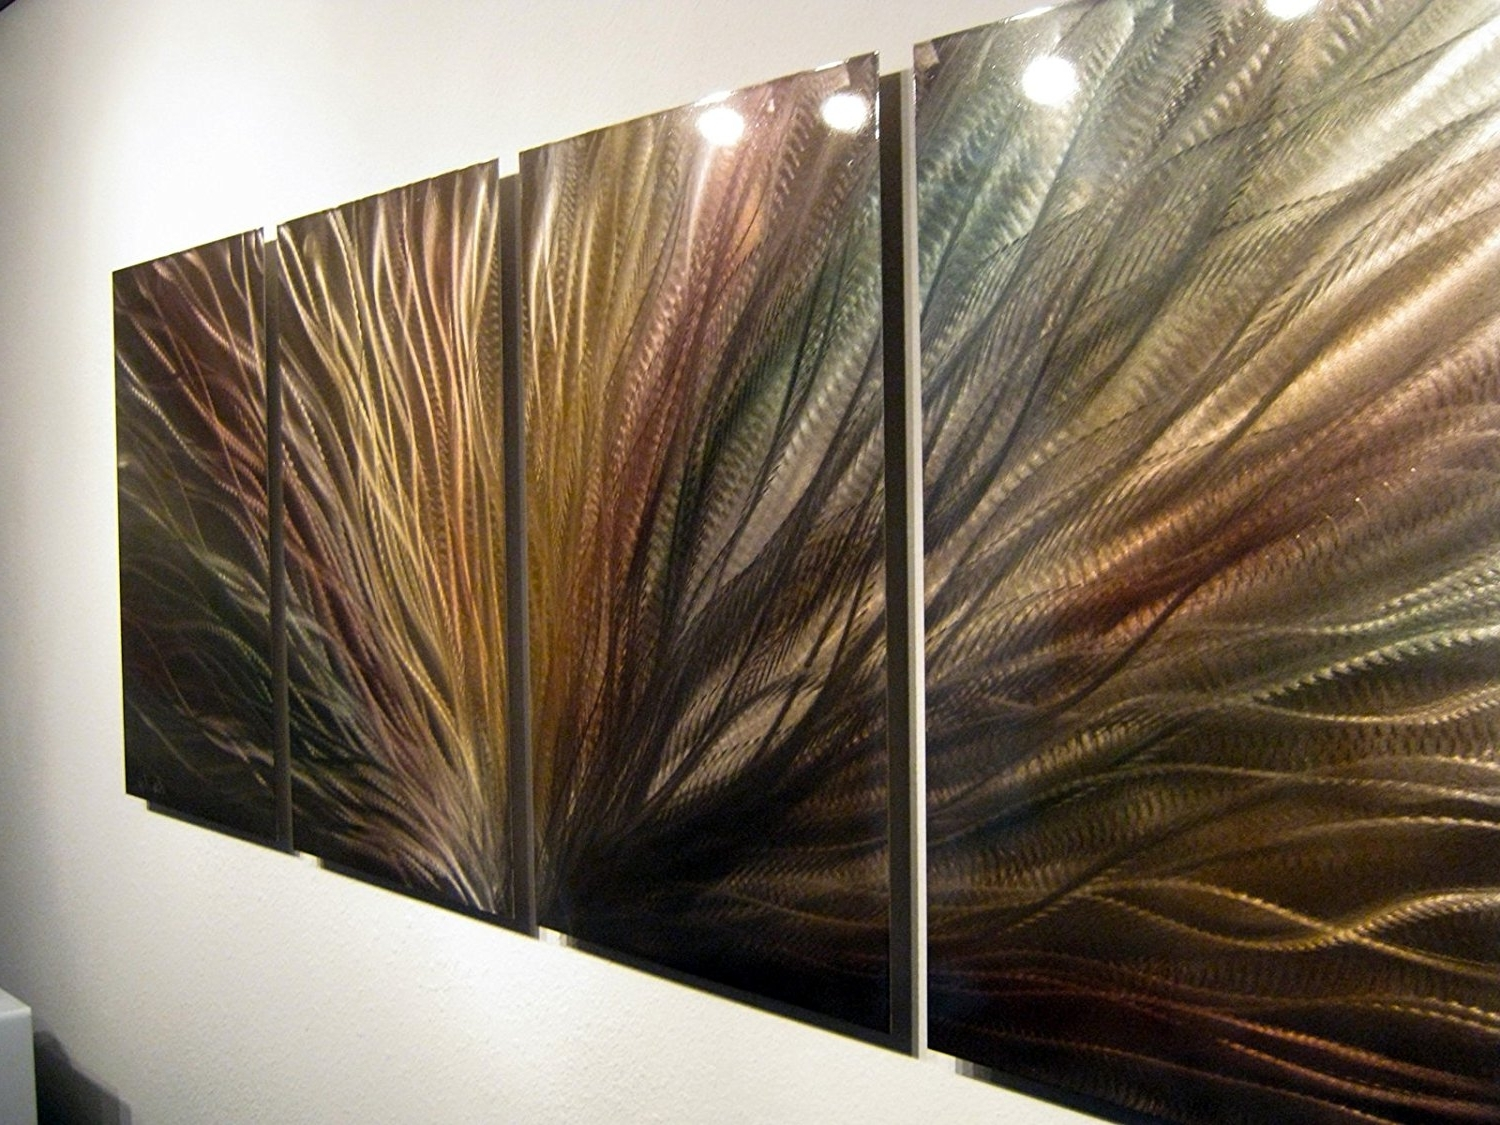 Most Recent Metal Wall Art In Amazon: Metal Wall Art, Modern Home Decor, Abstract Wall (View 12 of 15)